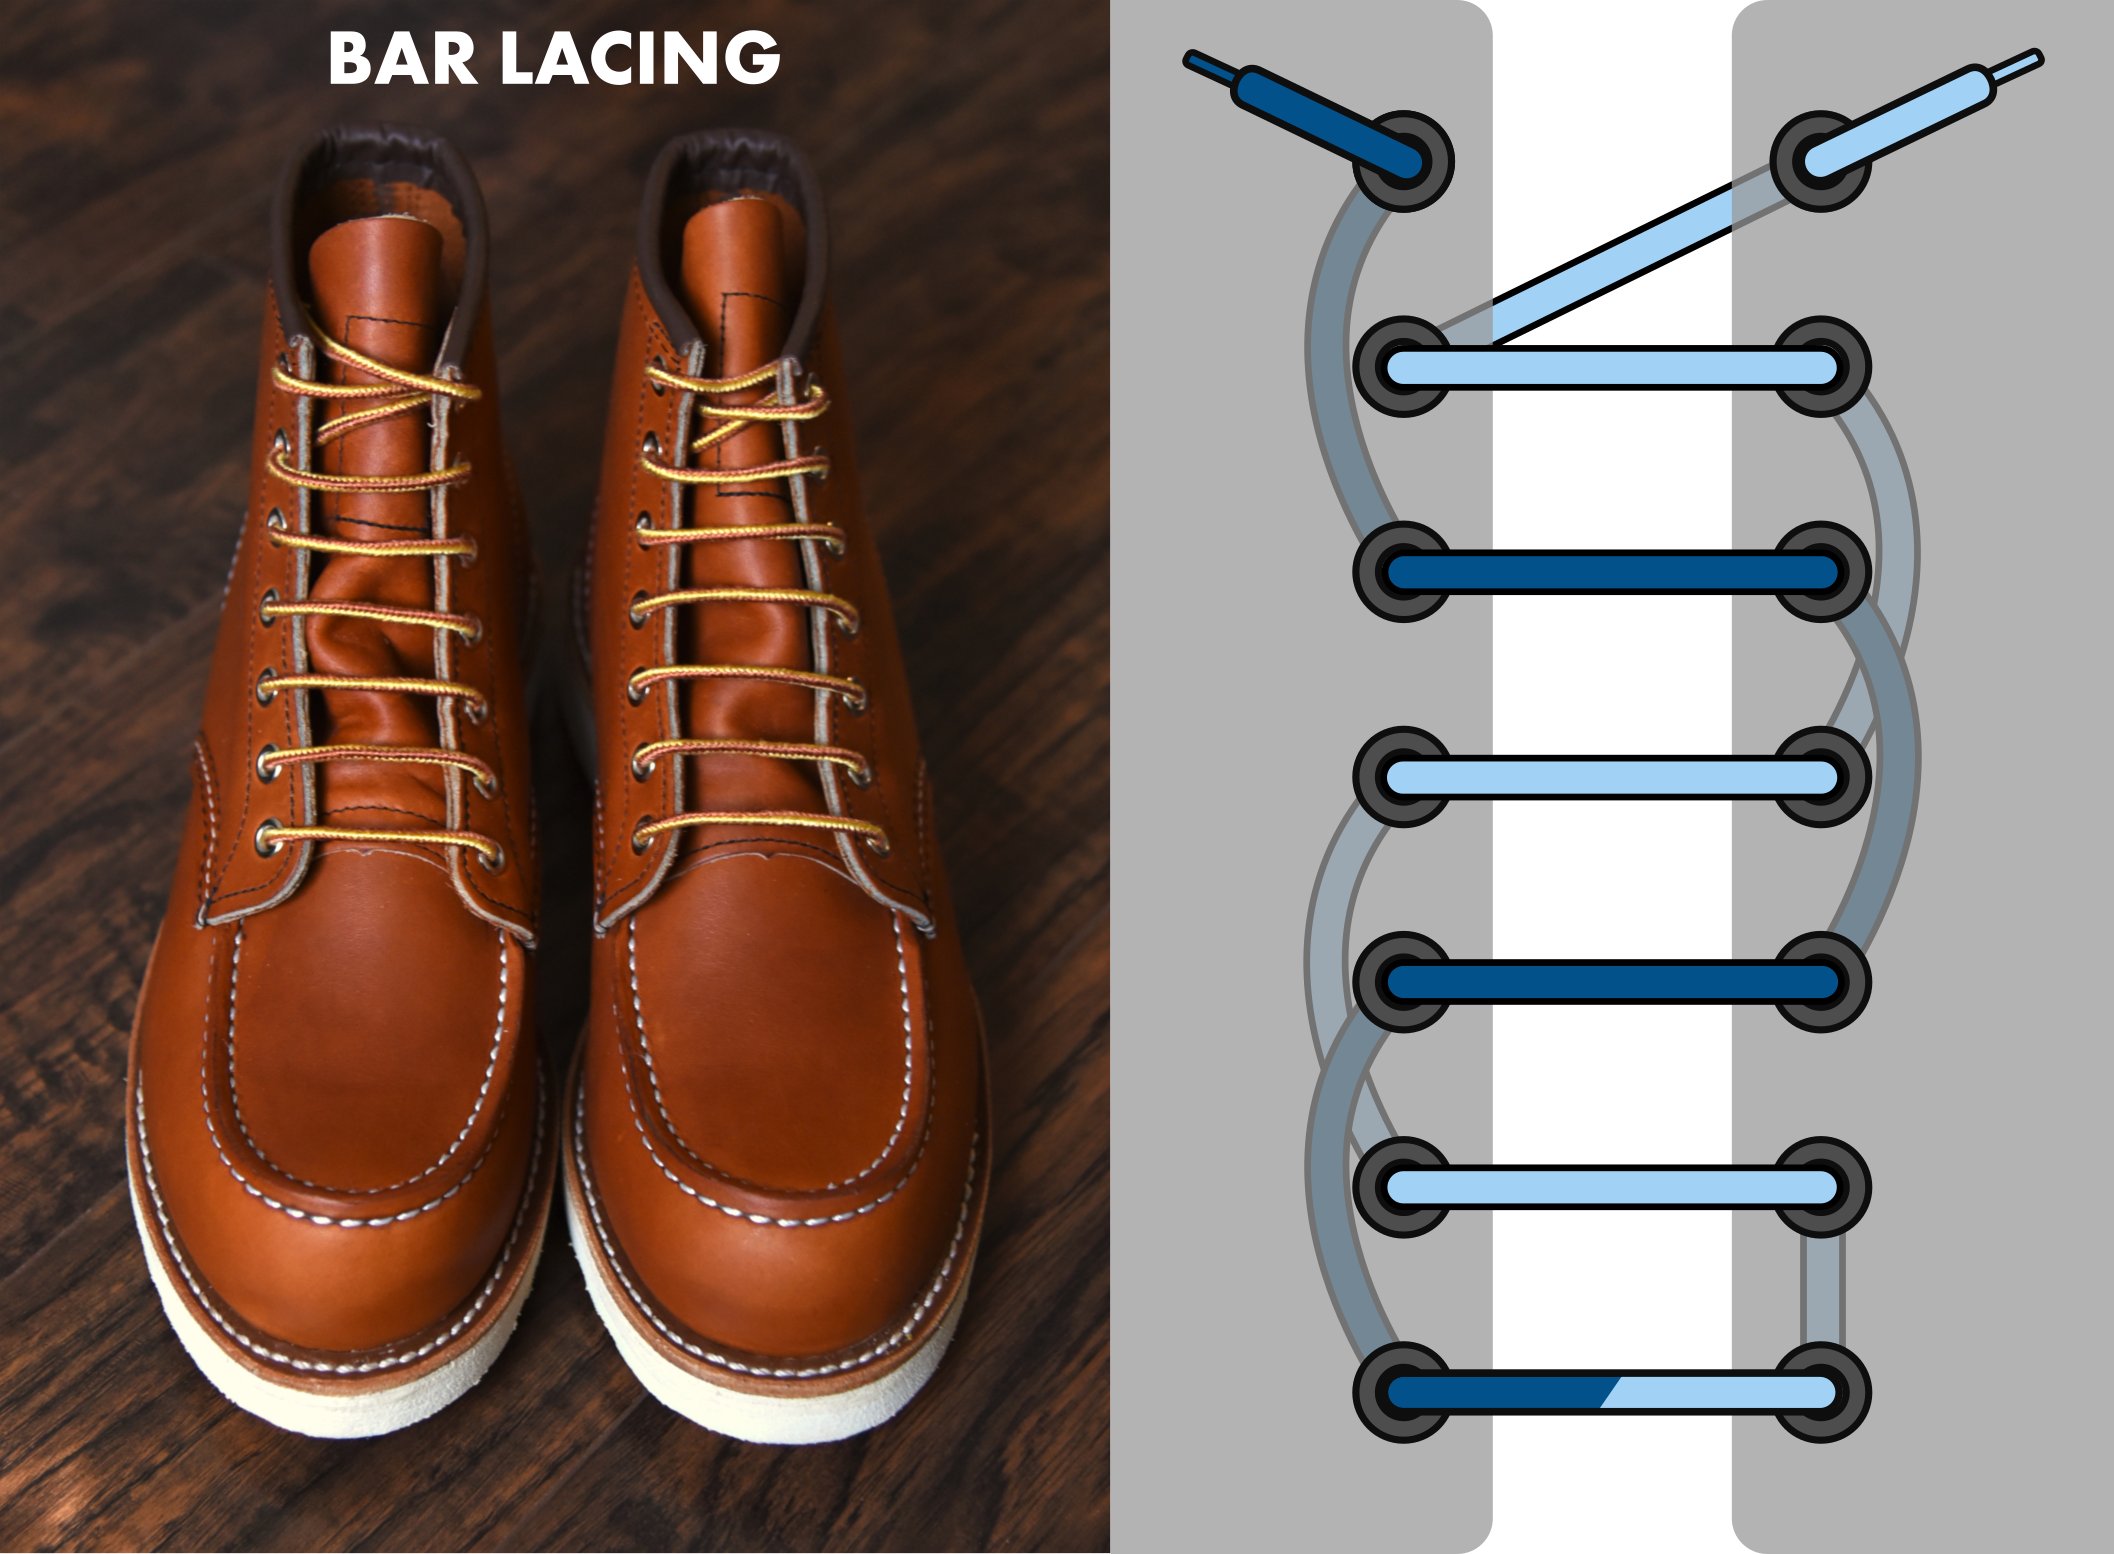 Straight or Bar lacing diagram for boots